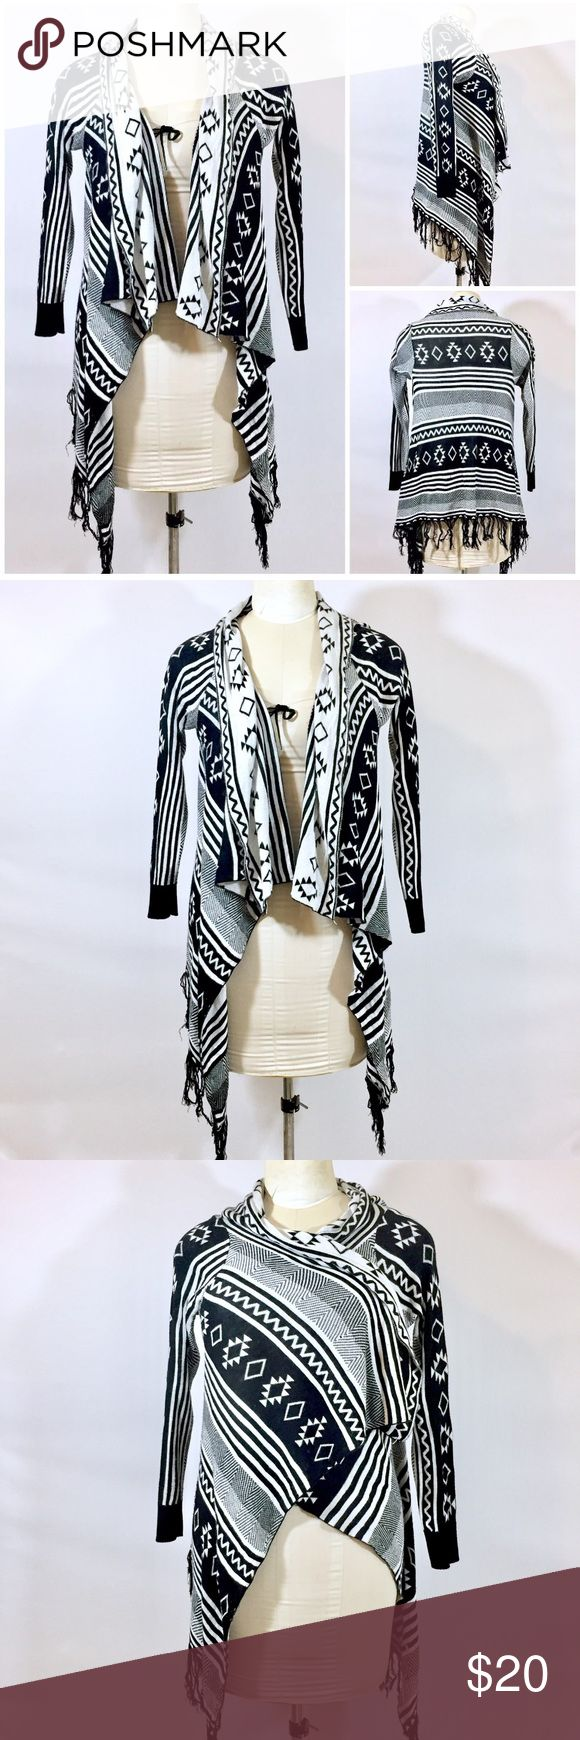 Haute Monde Aztec Print Fringe Flyaway Cardigan Up for sale super soft haute monde cardigan size M, great preowned condition, no stains or any rips. Check out my closet, bundle and give me your offer! Haute Monde Sweaters Cardigans